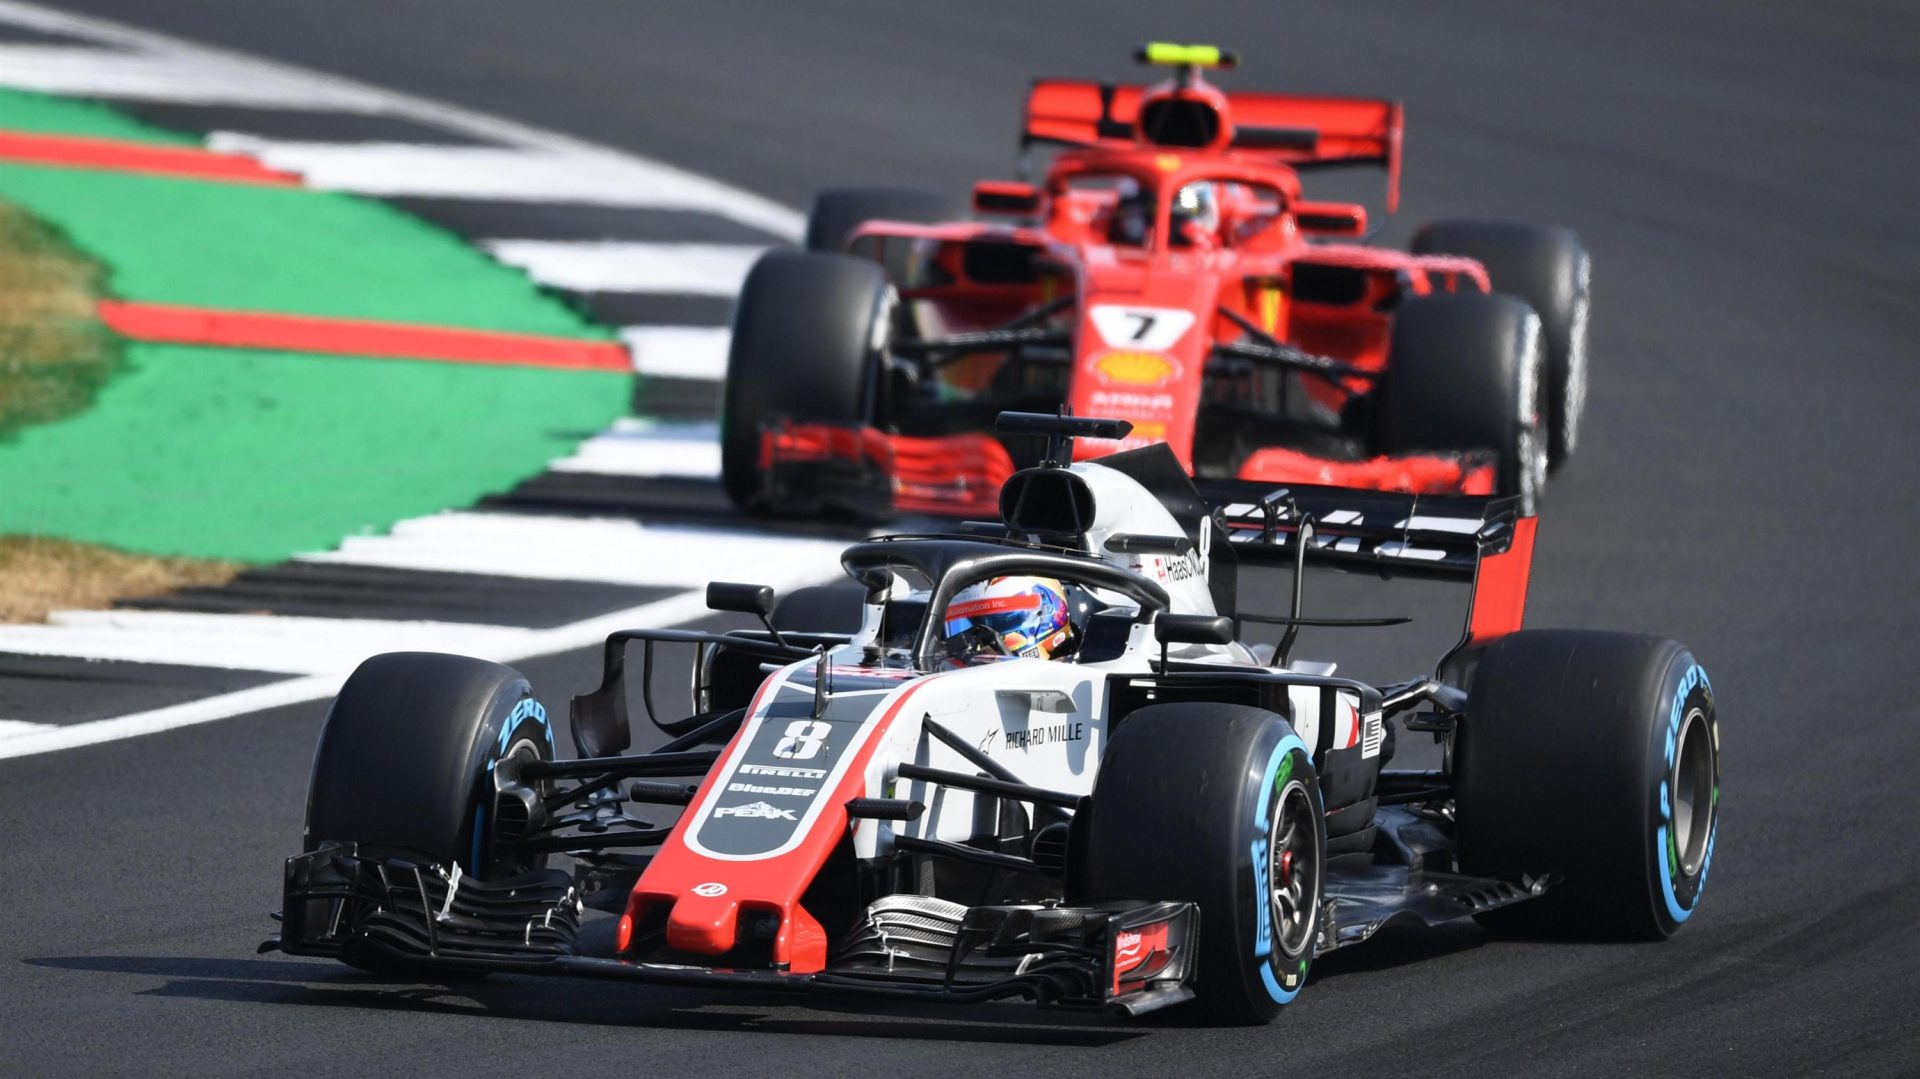 https://www.formula1.com/content/fom-website/en/latest/features/2018/7/gallery--the-best-images-from-great-britain/_jcr_content/featureContent/manual_gallery/image8.img.1920.medium.jpg/1530869255162.jpg